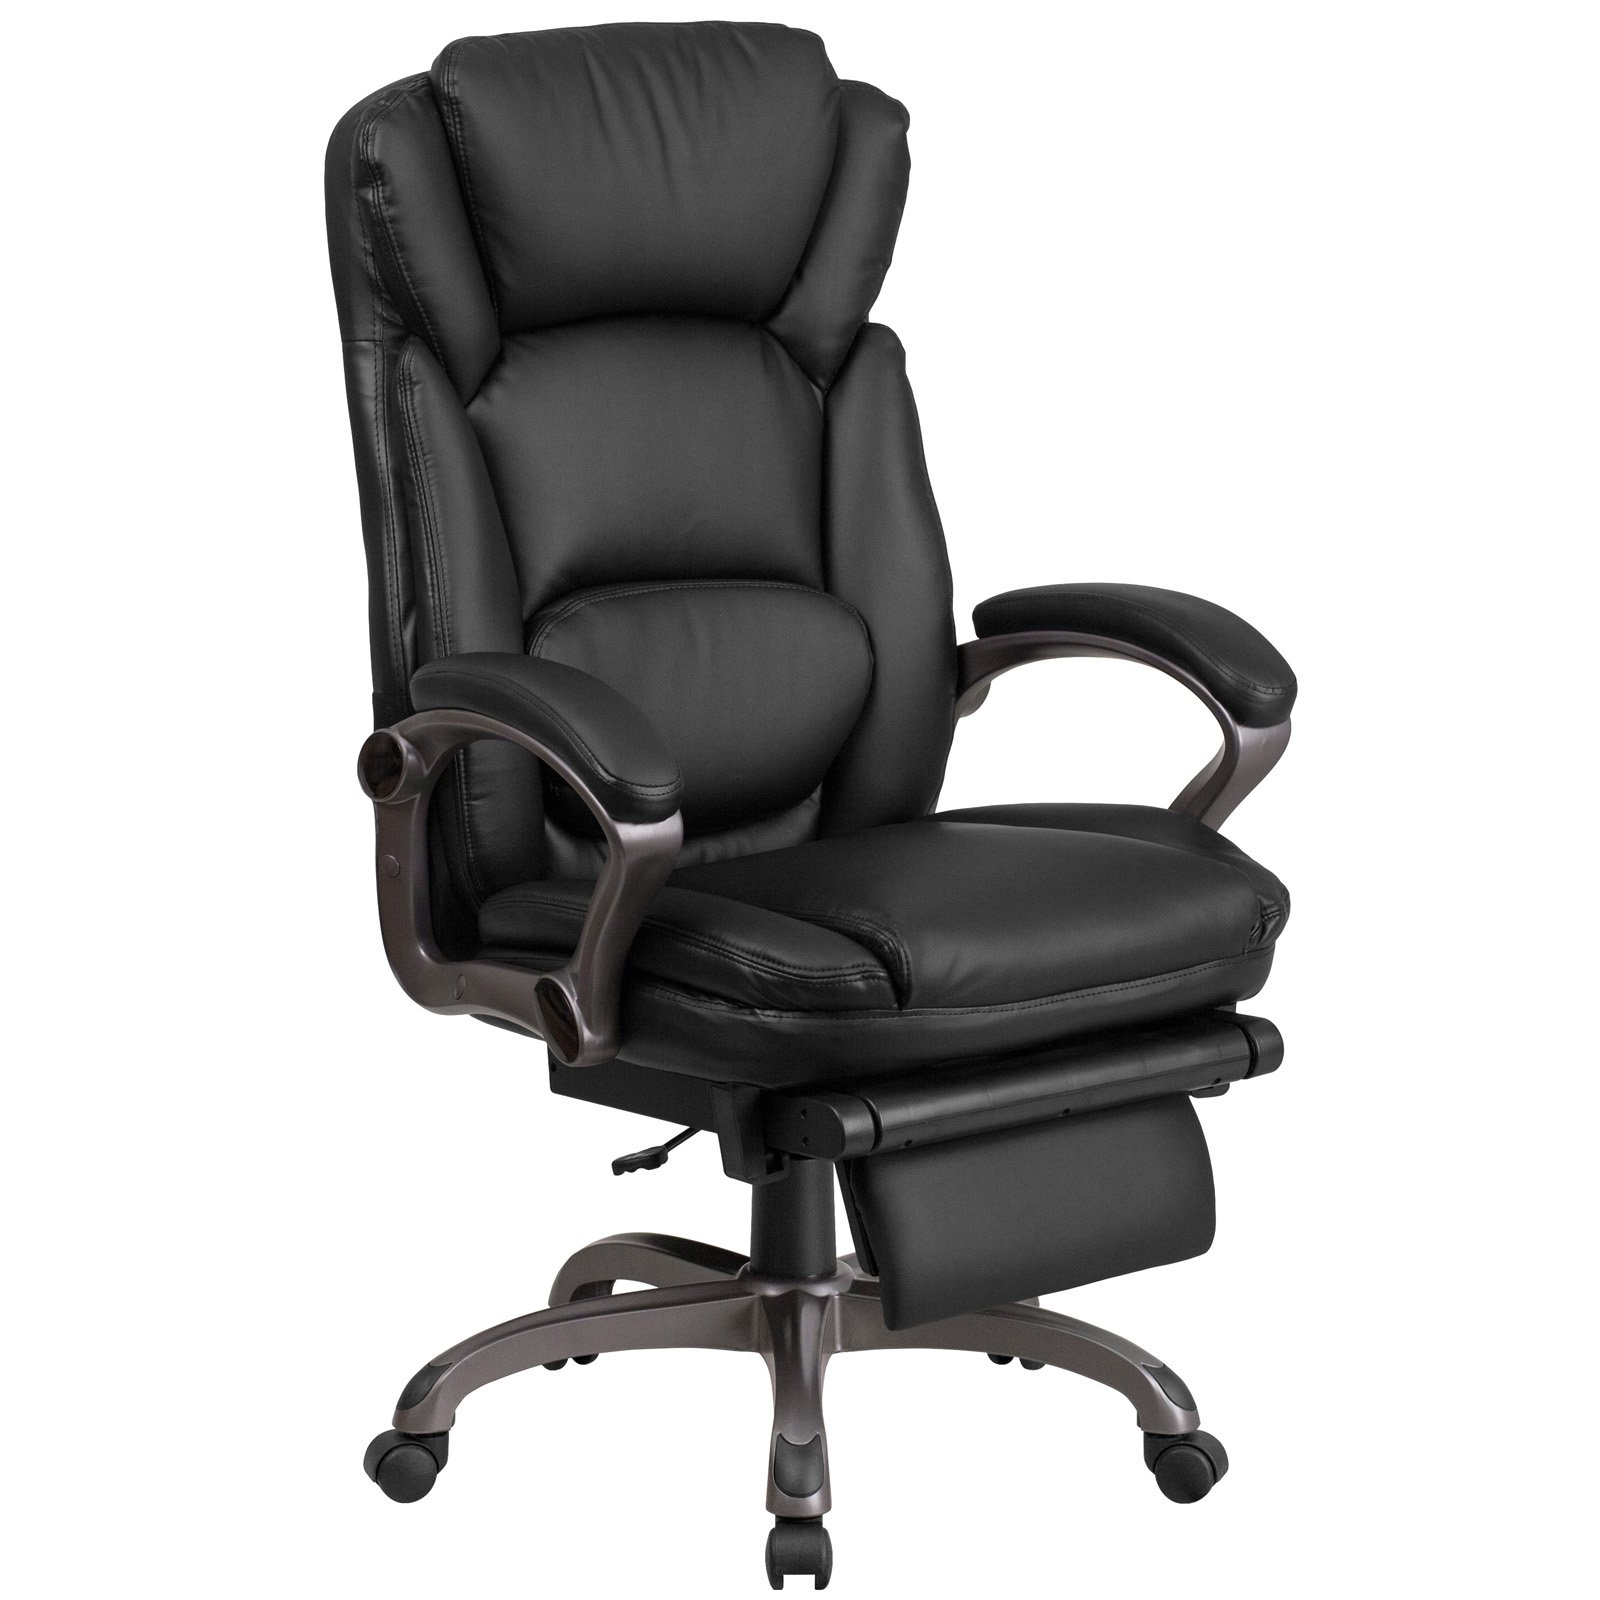 black leather office chair high back ergonomic varier flash furniture executive reclining swivel with padded armrests walmart com